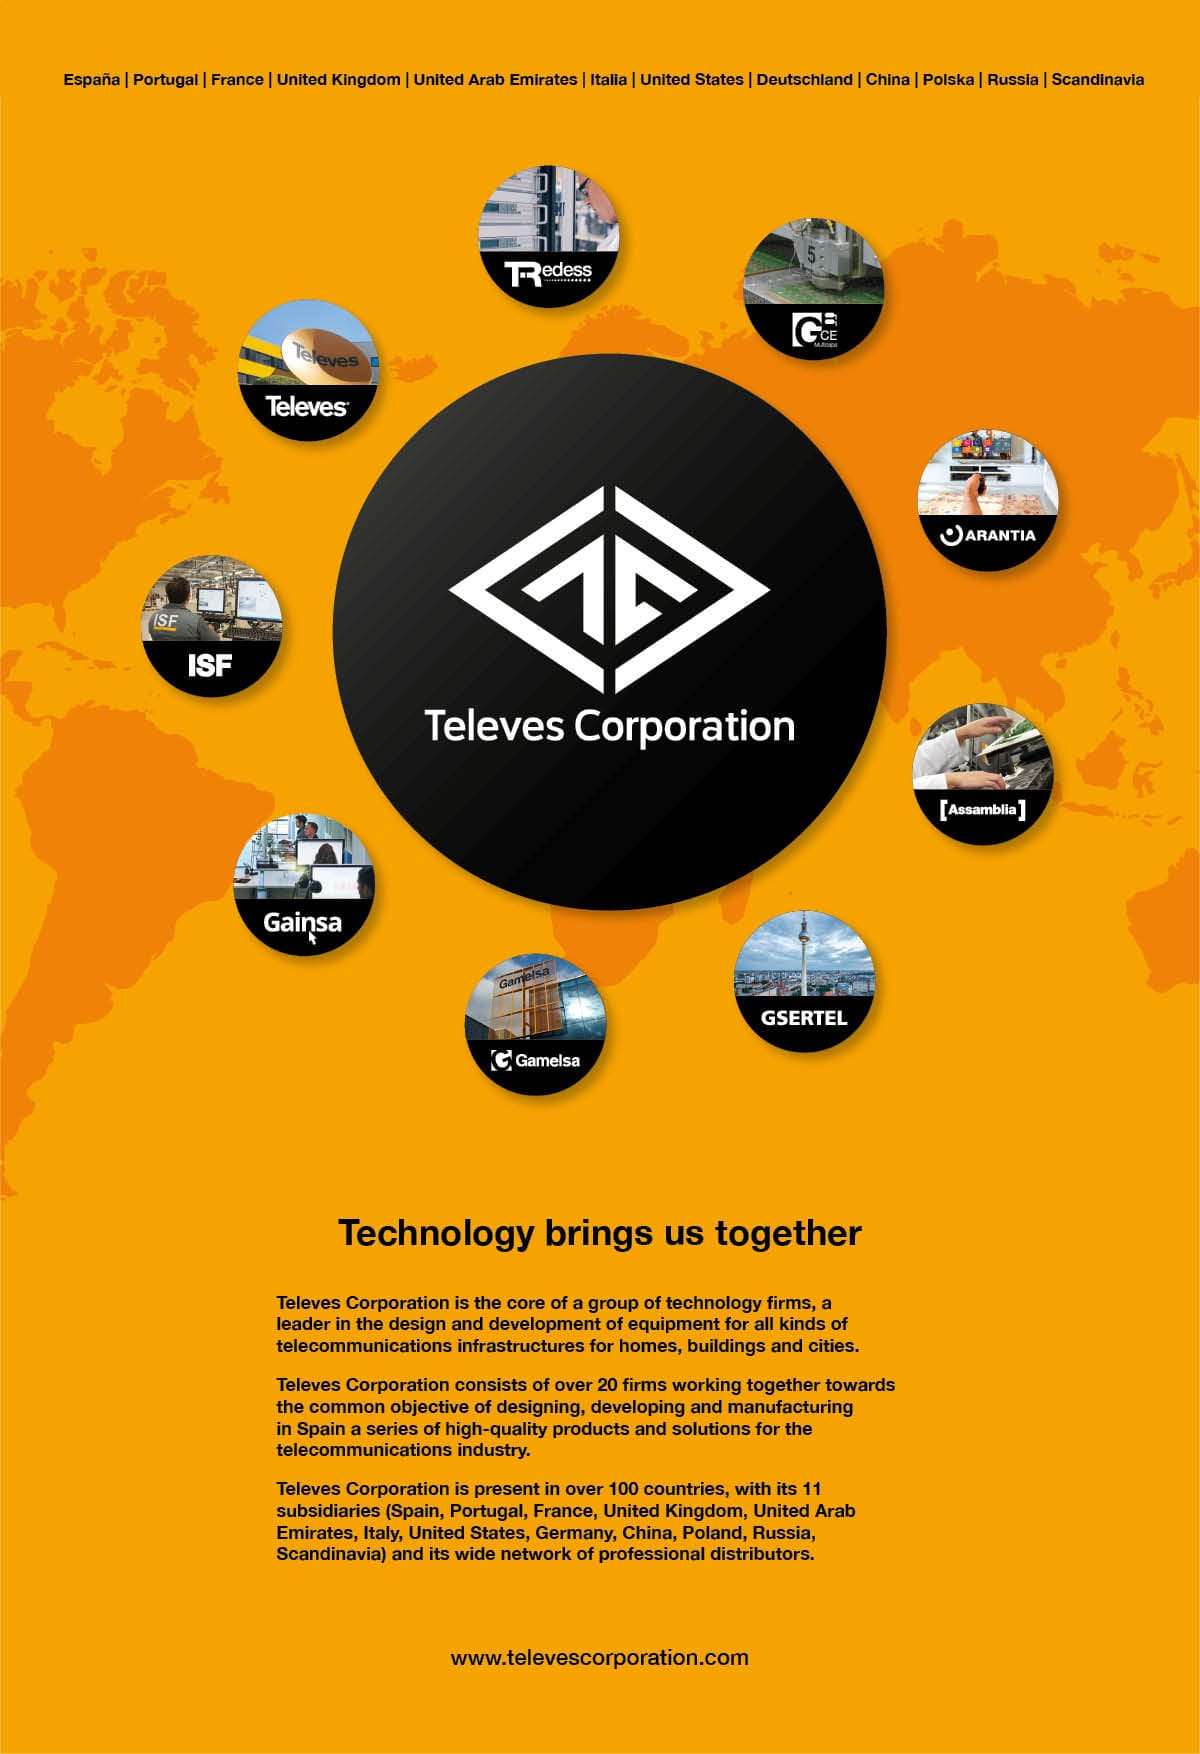 Televes Corporation